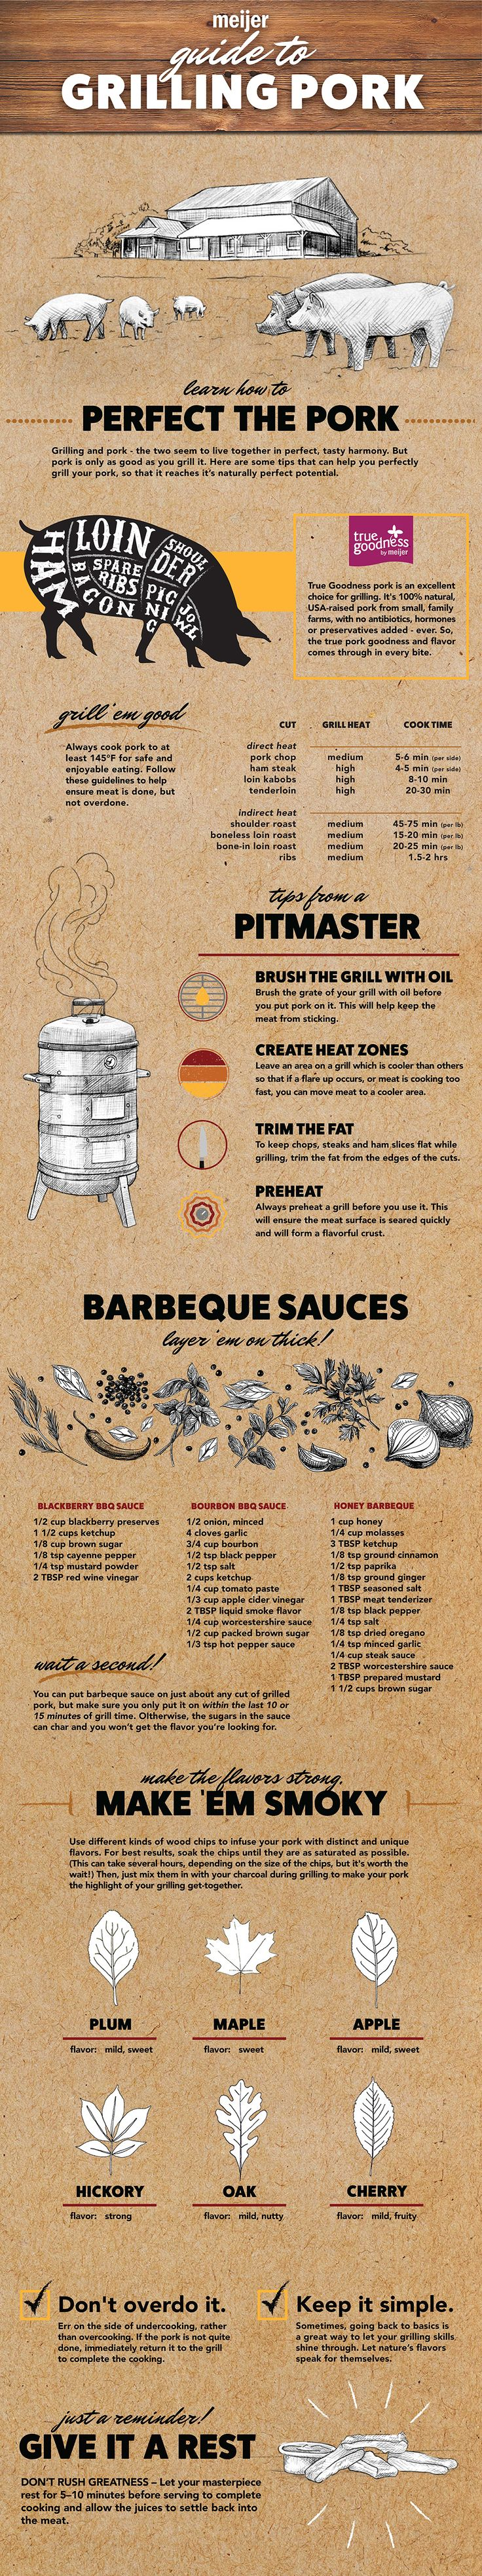 There's nothing better than pork on the grill – when it's done right. Get cooking tips and BBQ recipes to help you master the art of grilling pork, plus learn the secret of using wood chips for the smoky flavor you want.